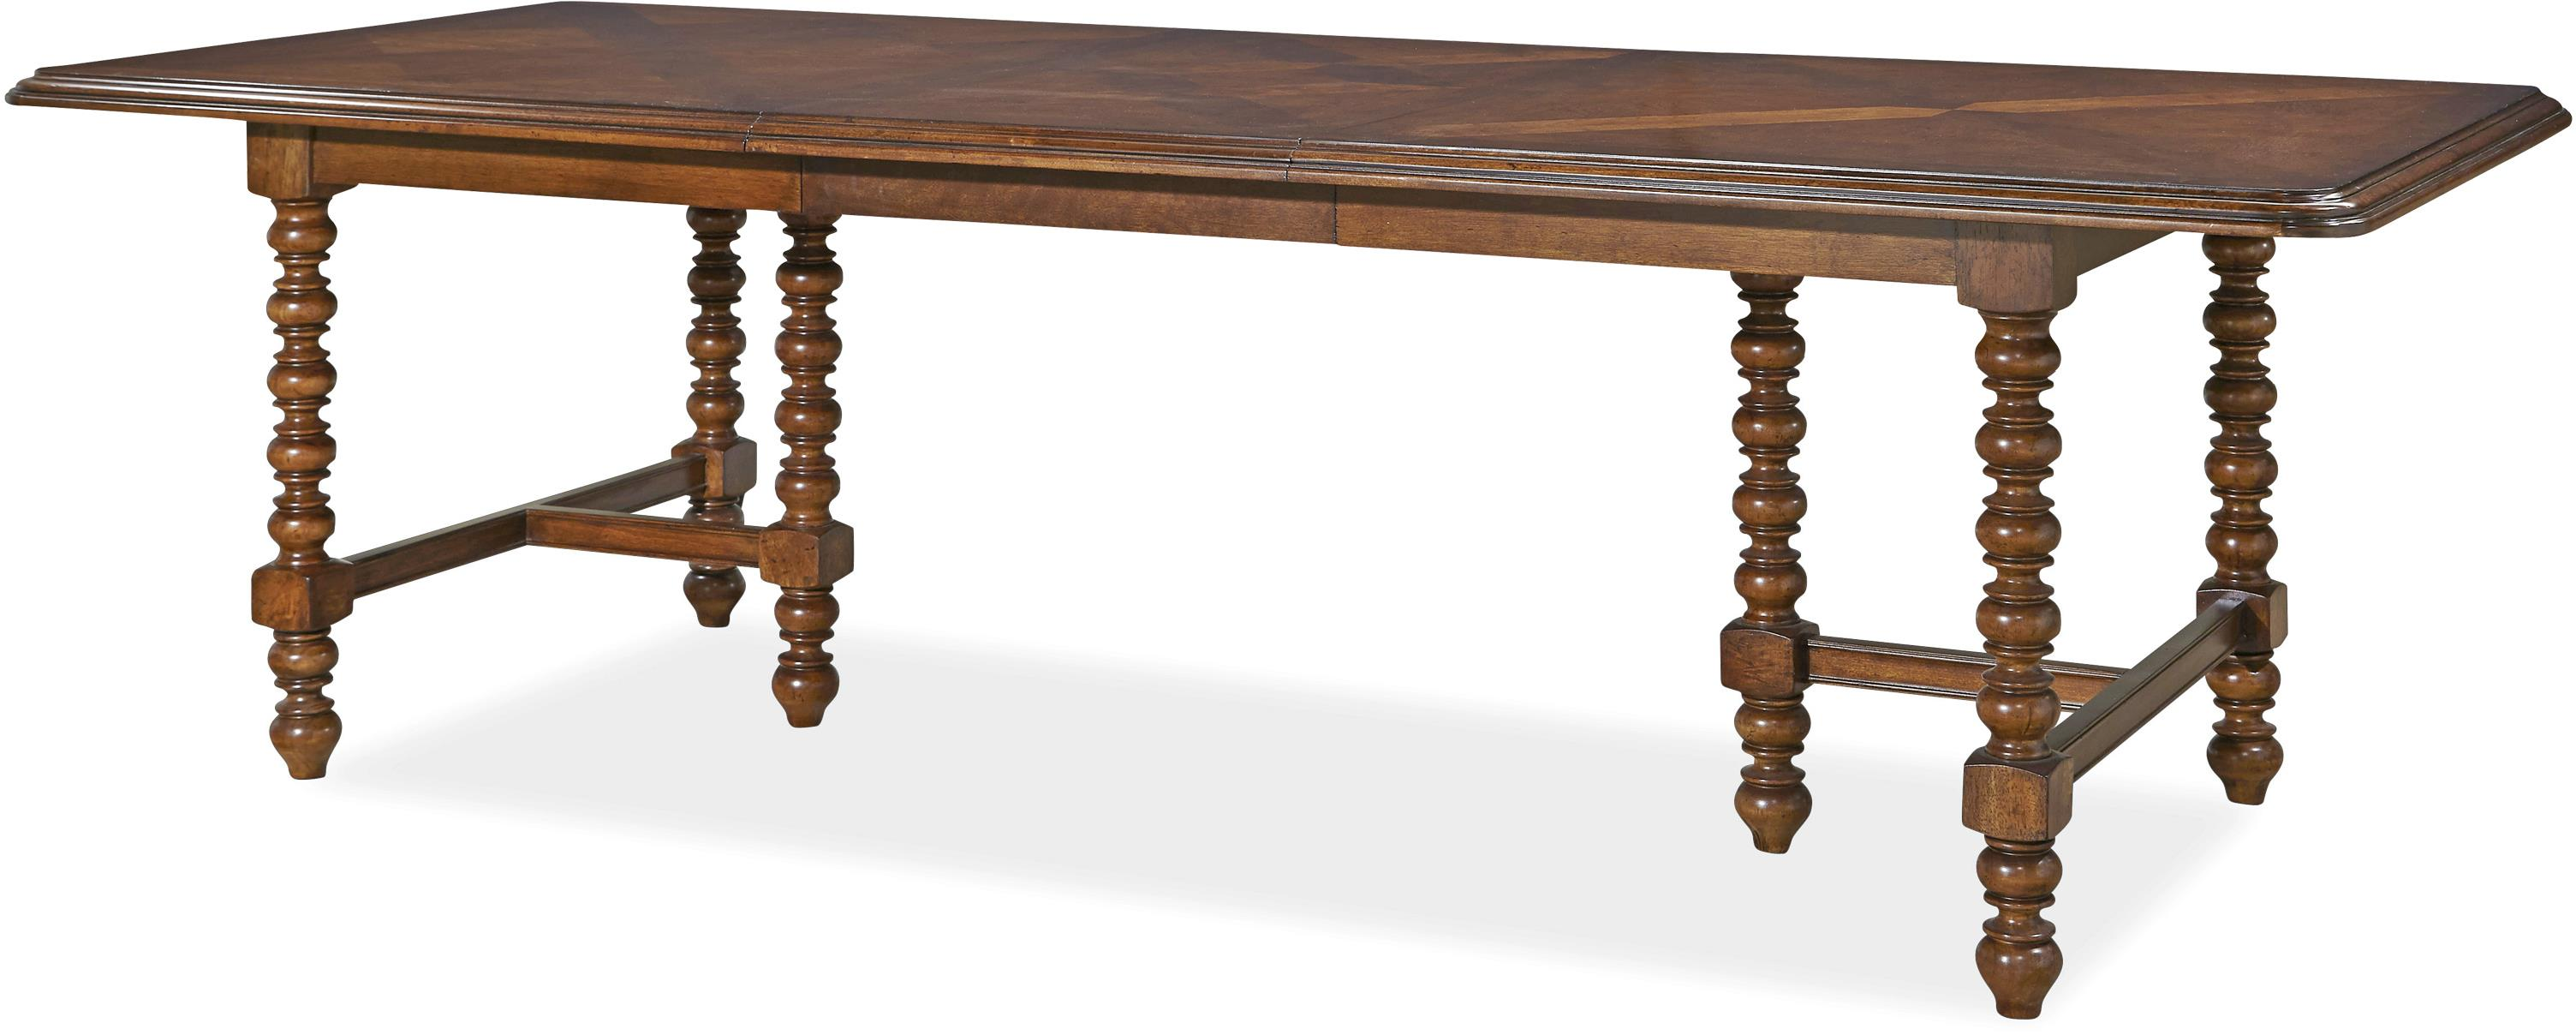 Paula Deen by Universal Dogwood Dogwood Dinner Table - Item Number: 596655